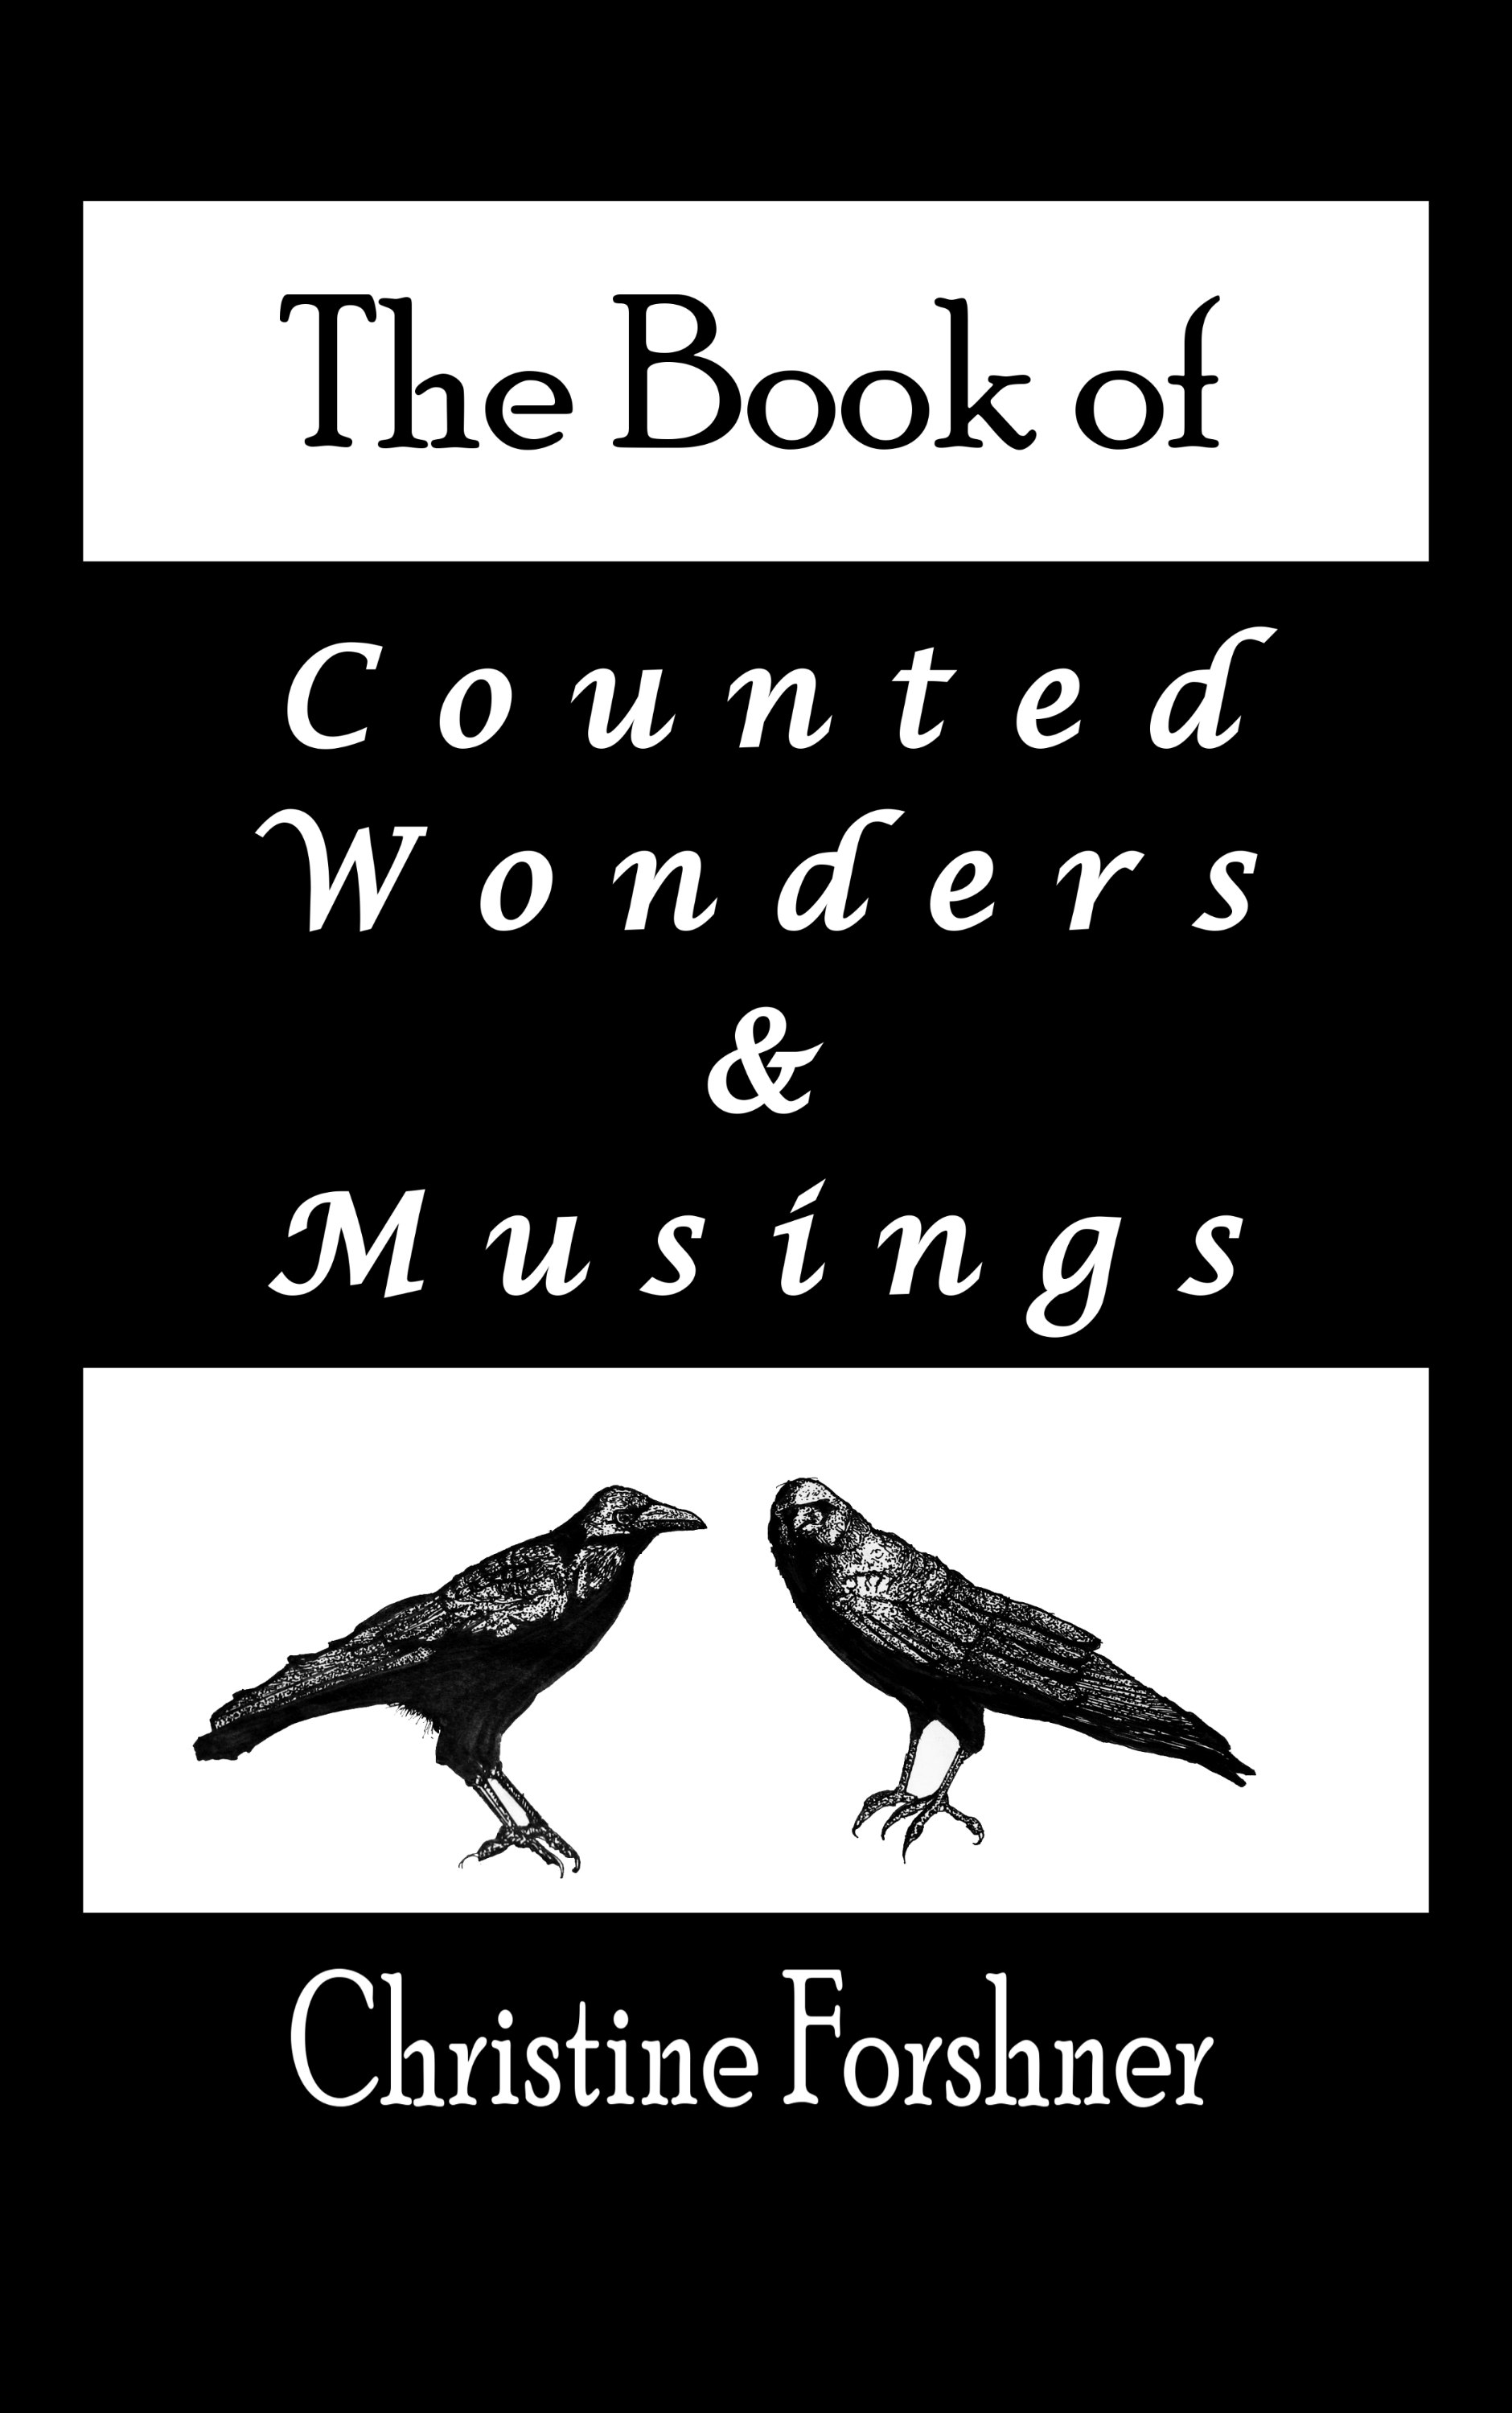 The Book of Counted Wonders and Musings